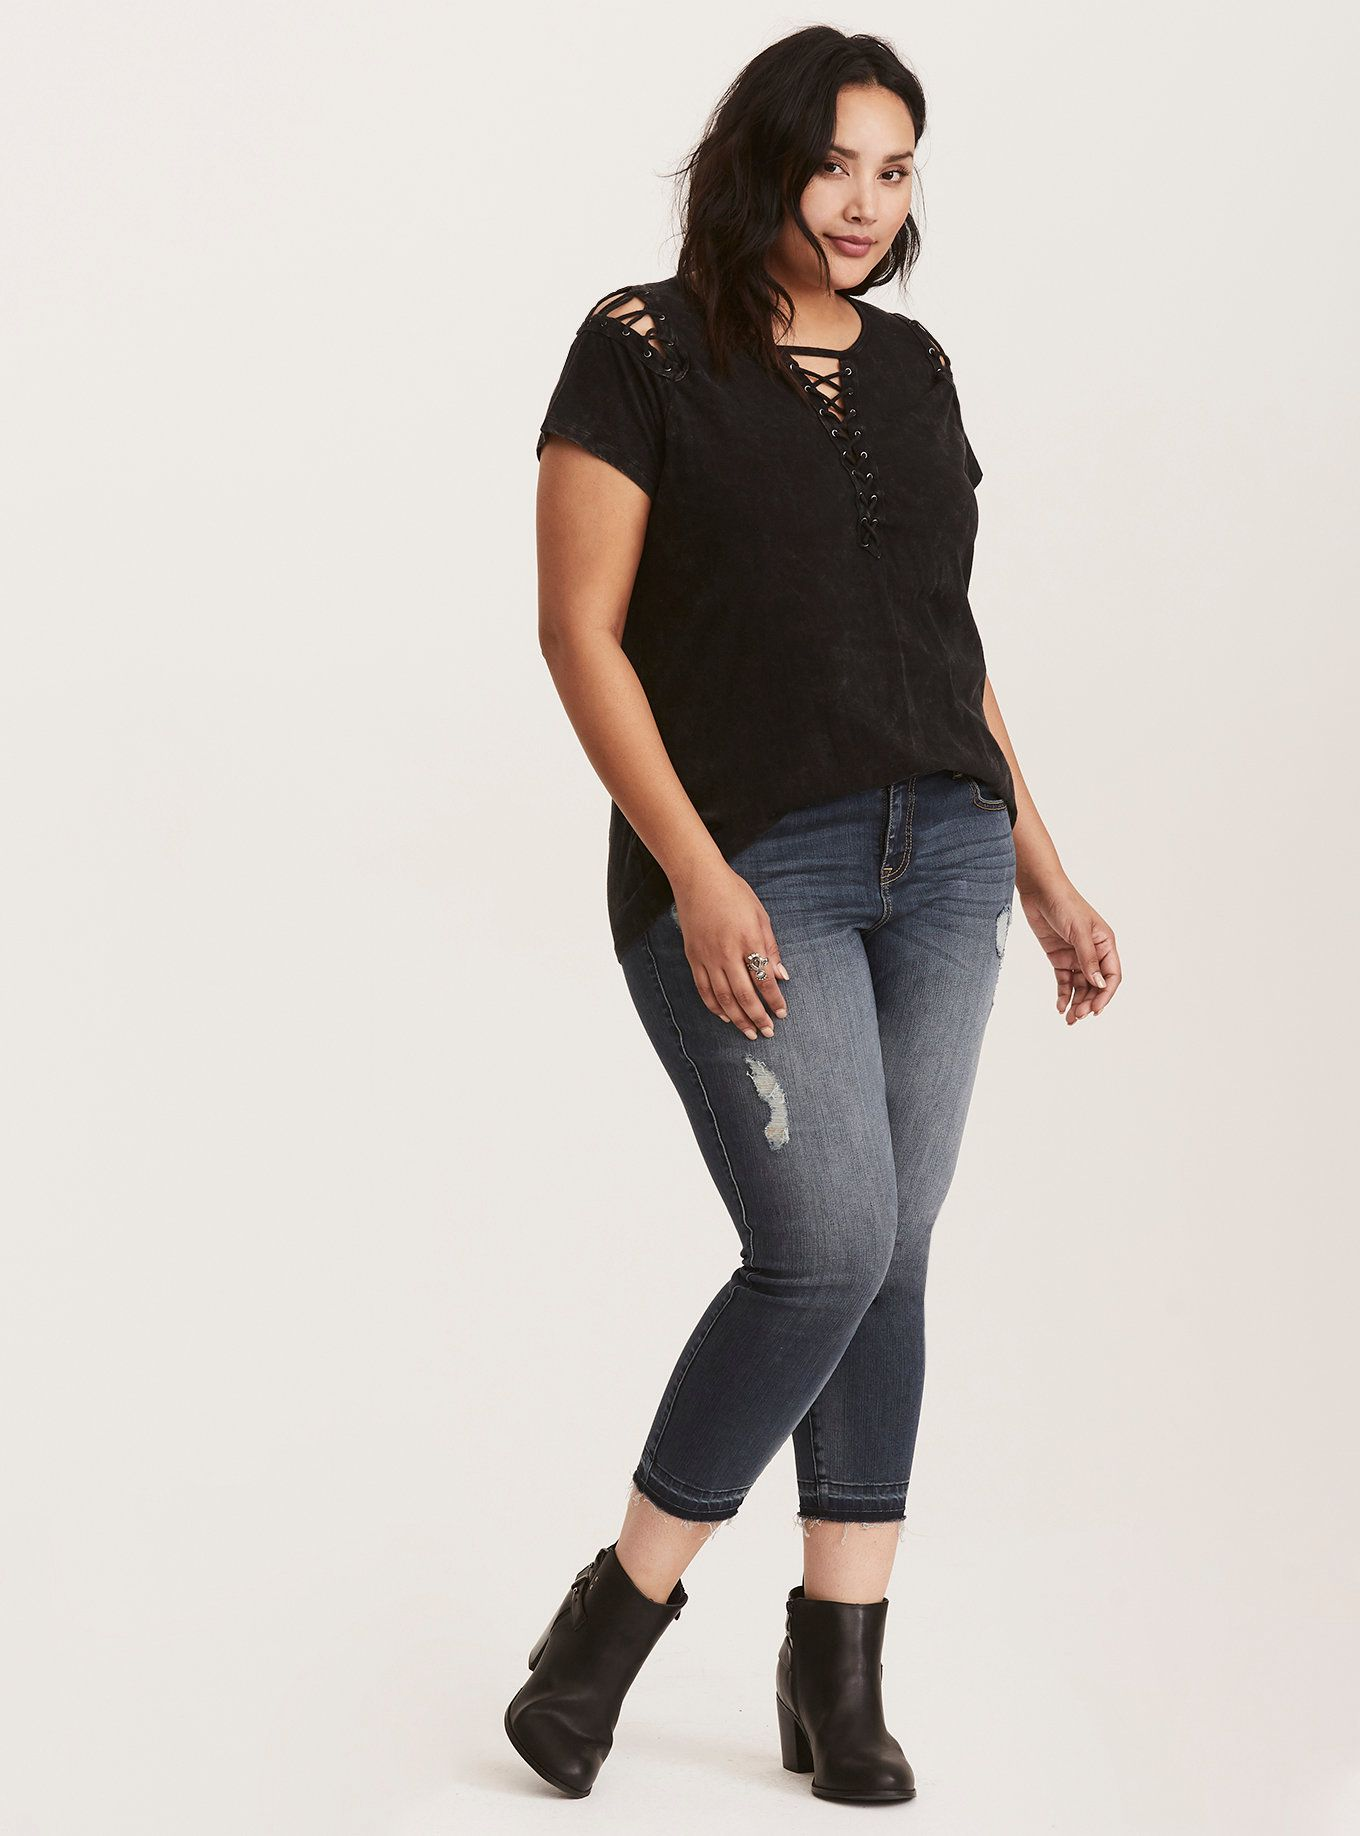 Mineral Wash Knit Lace Up Cold Shoulder Tee in Black  c07543ebd